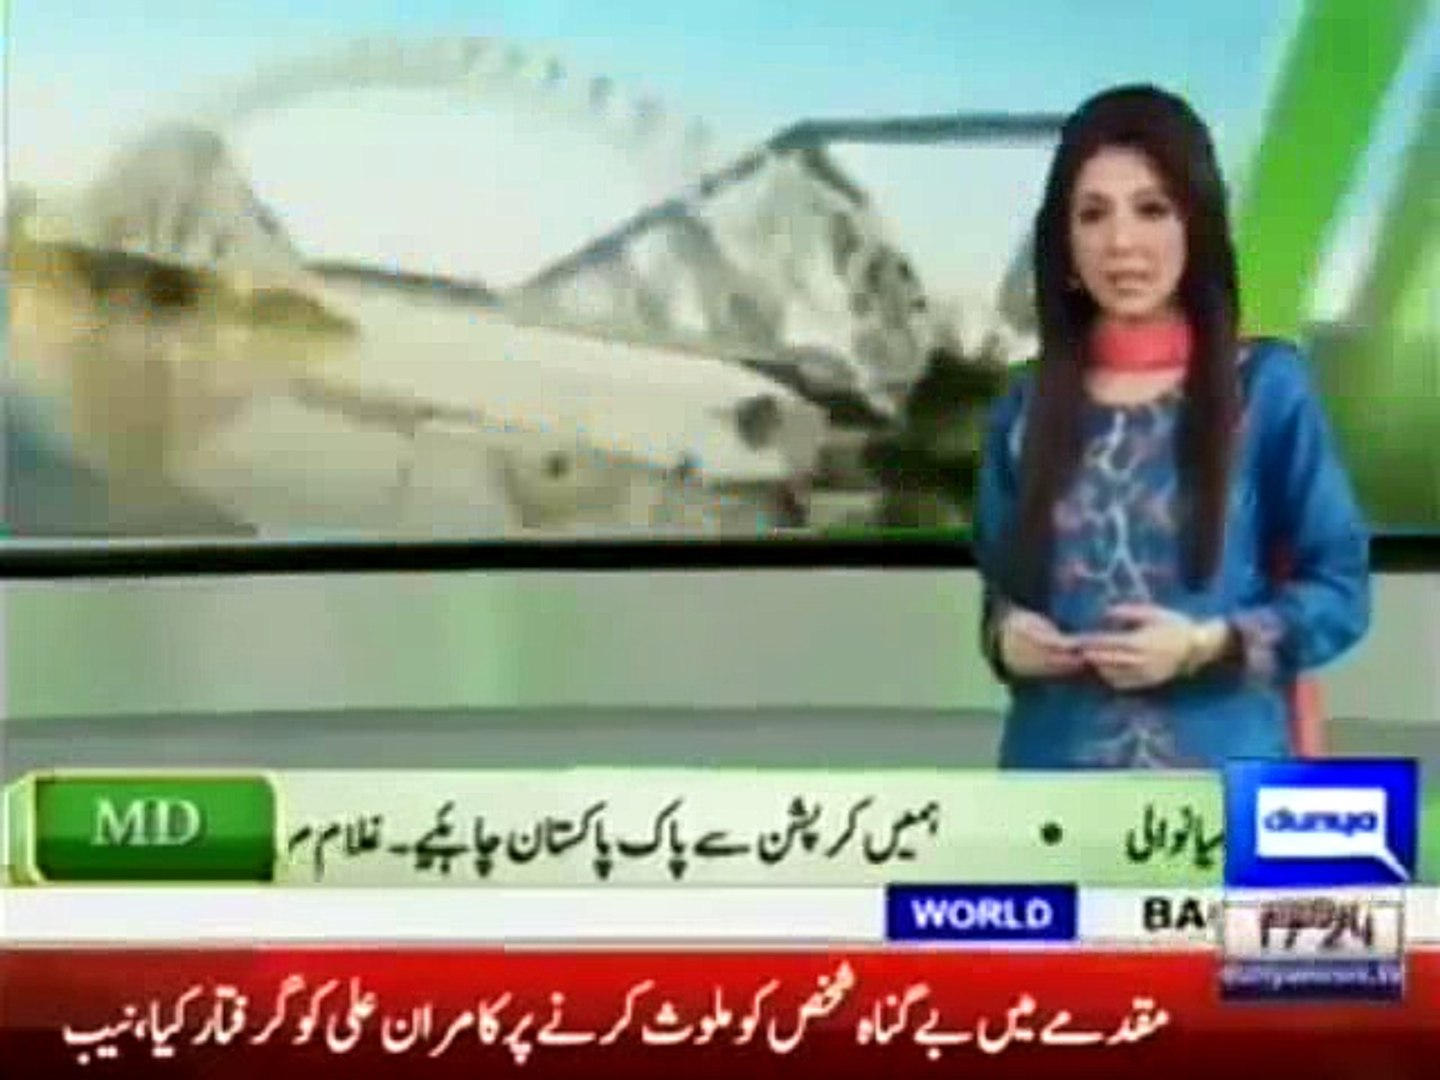 Unbelievable - School Constructed Within 20 Days in Pakistan